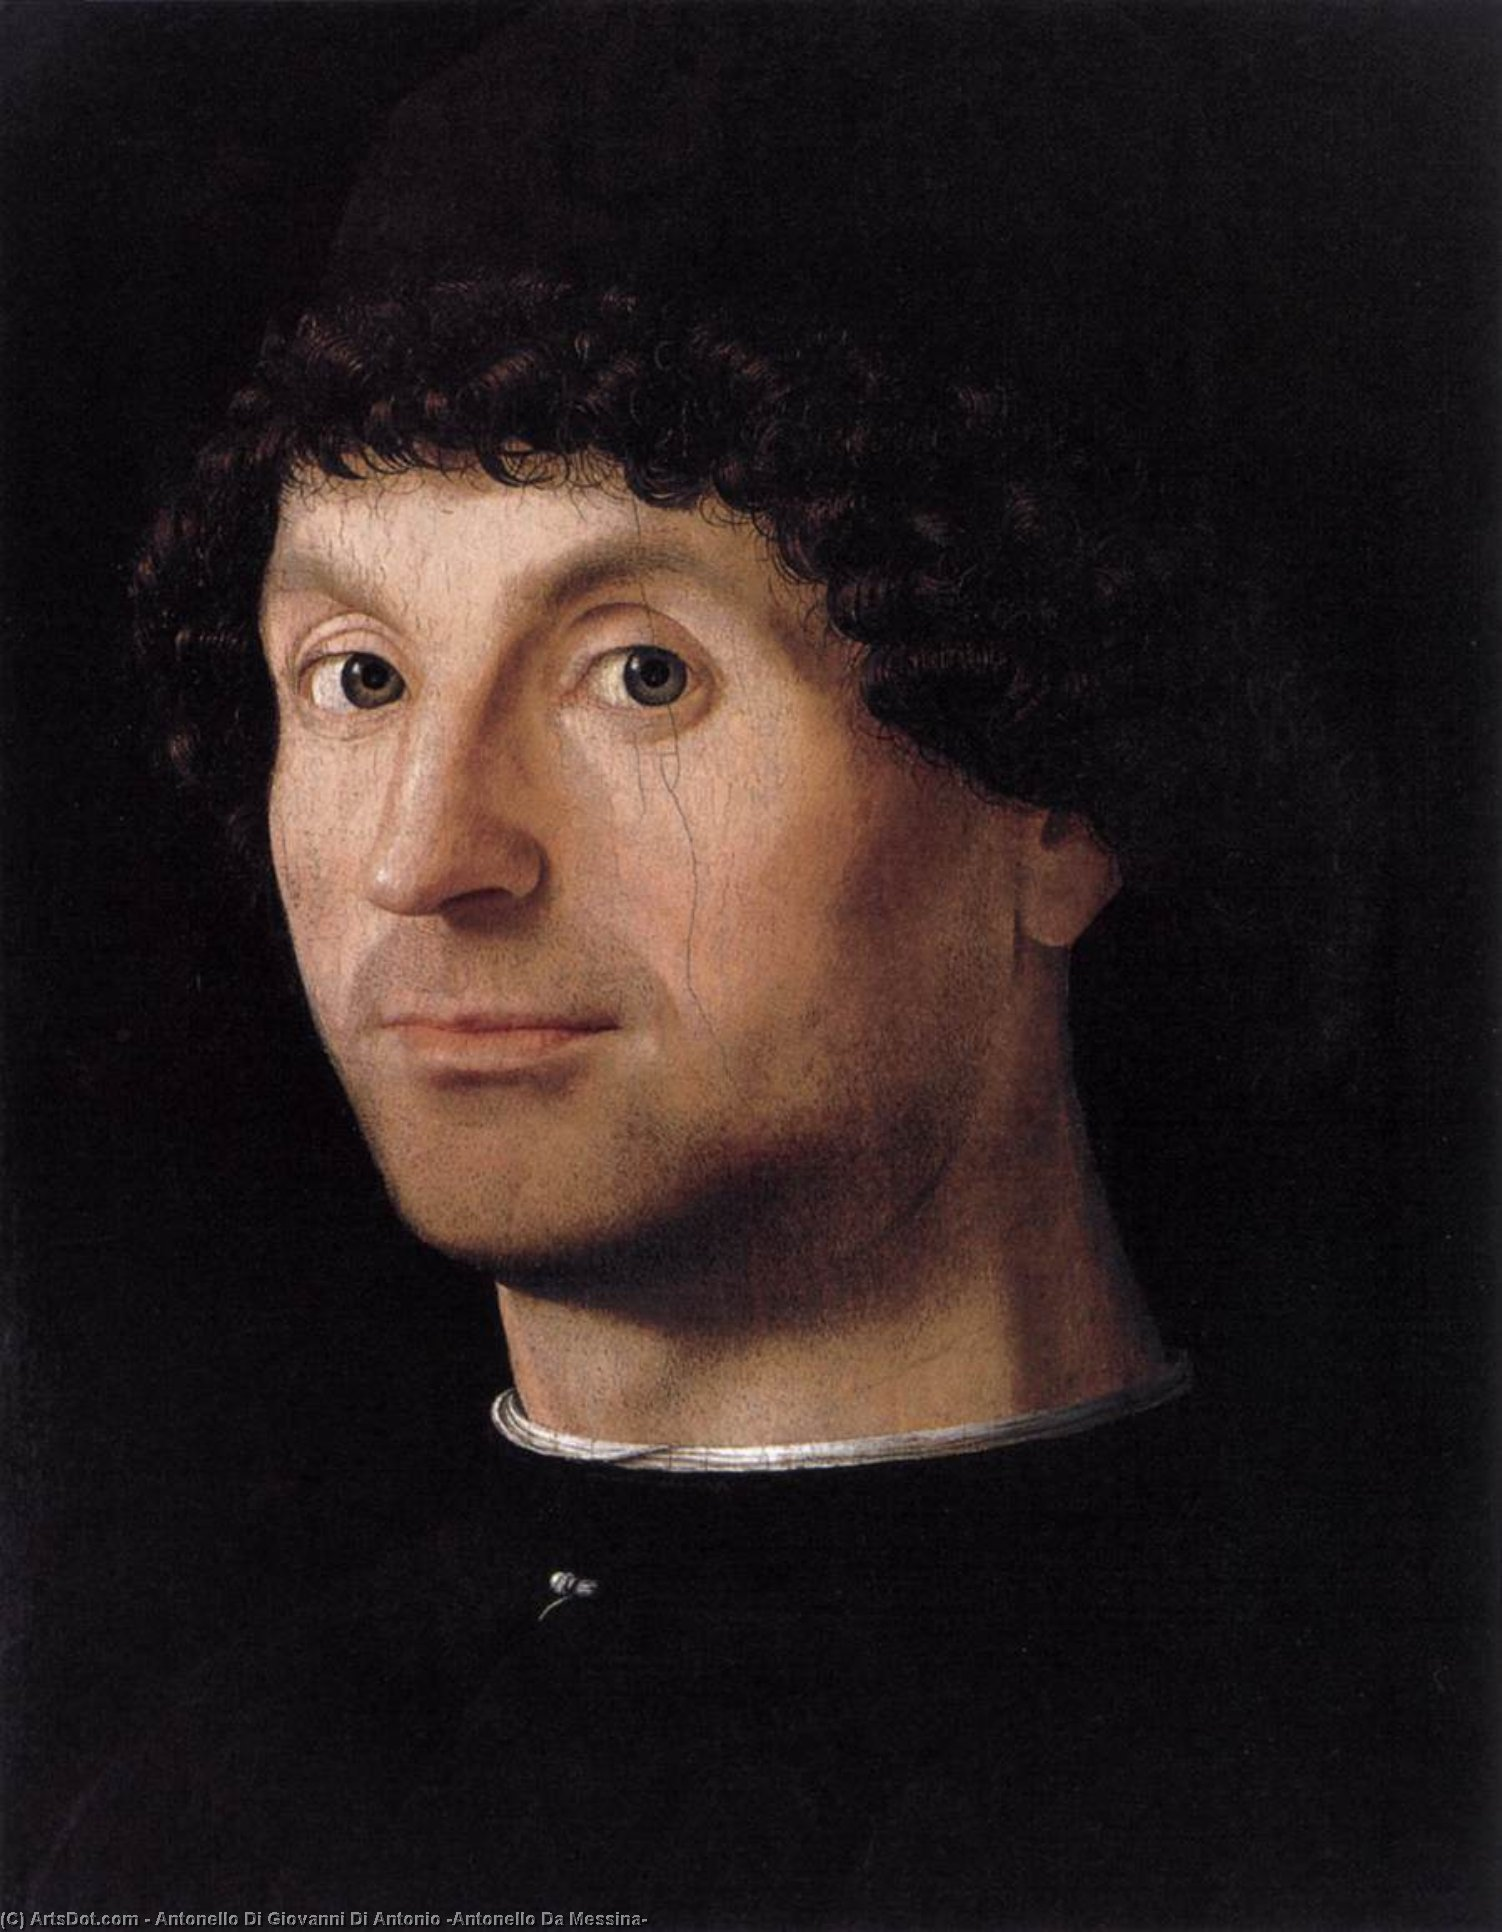 の肖像画 男, パネルに油絵 バイ Antonello Di Giovanni Di Antonio (Antonello Da Messina) (1430-1479, Italy)